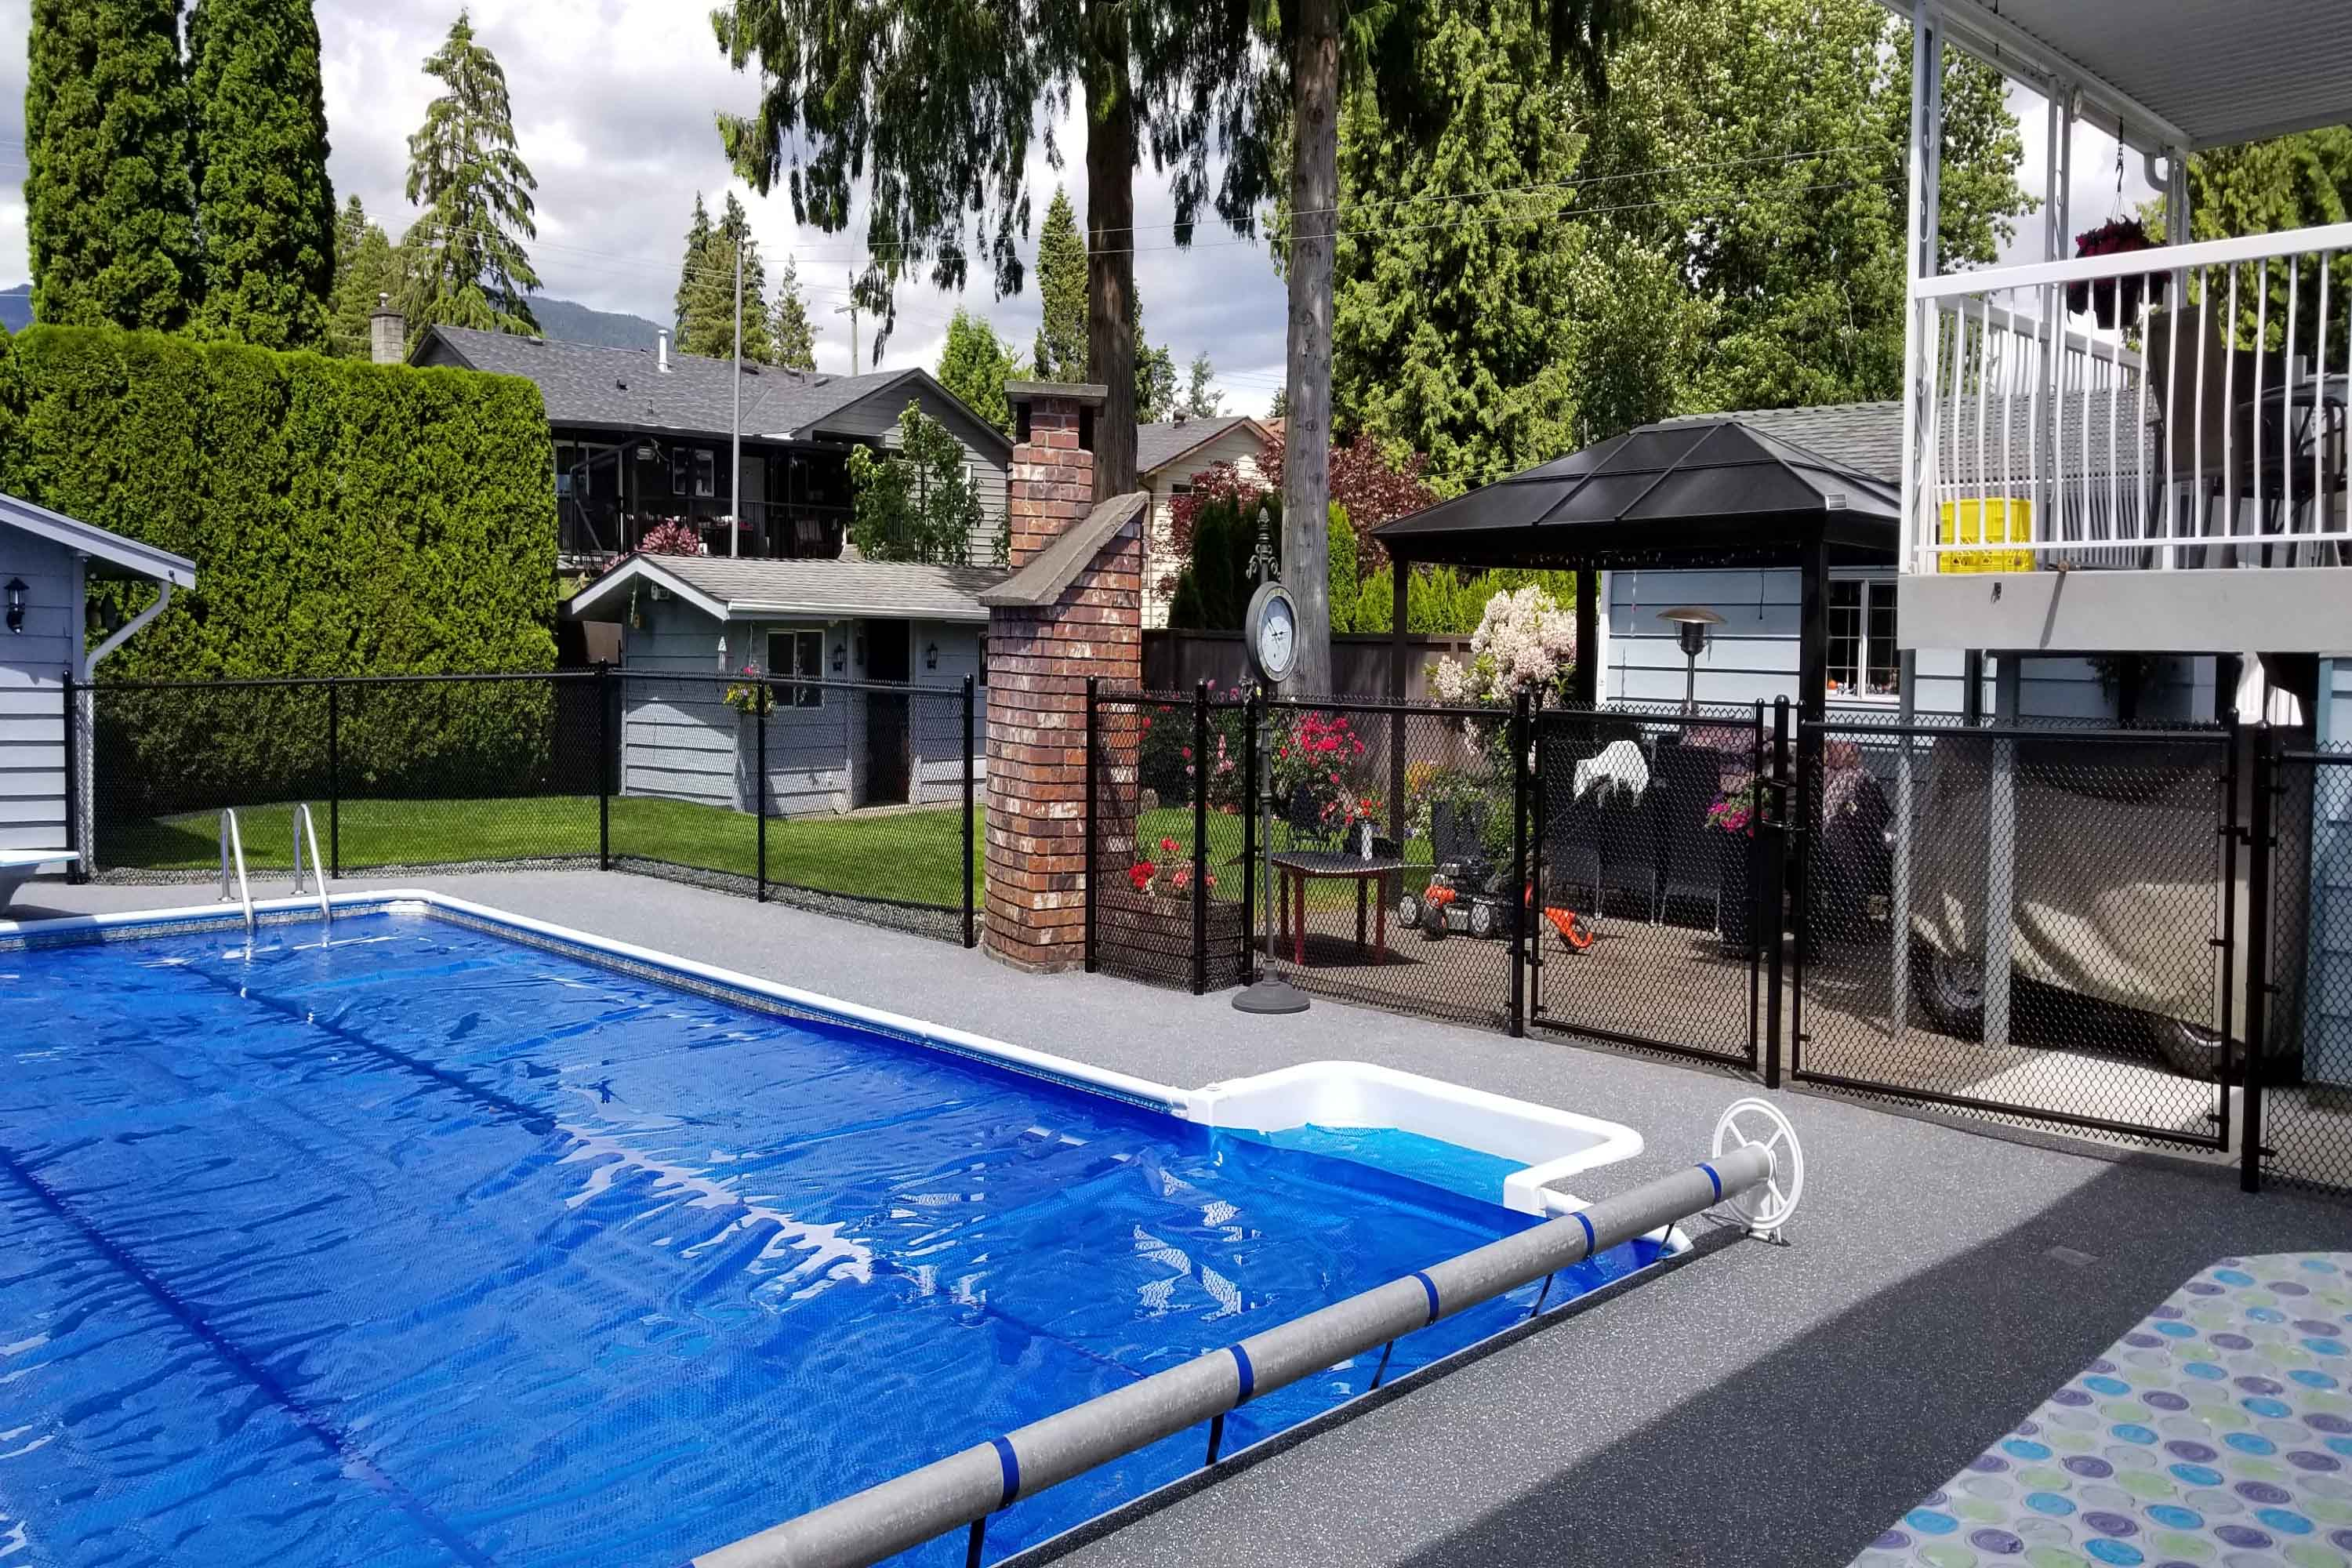 Tennis Court and Pool fences